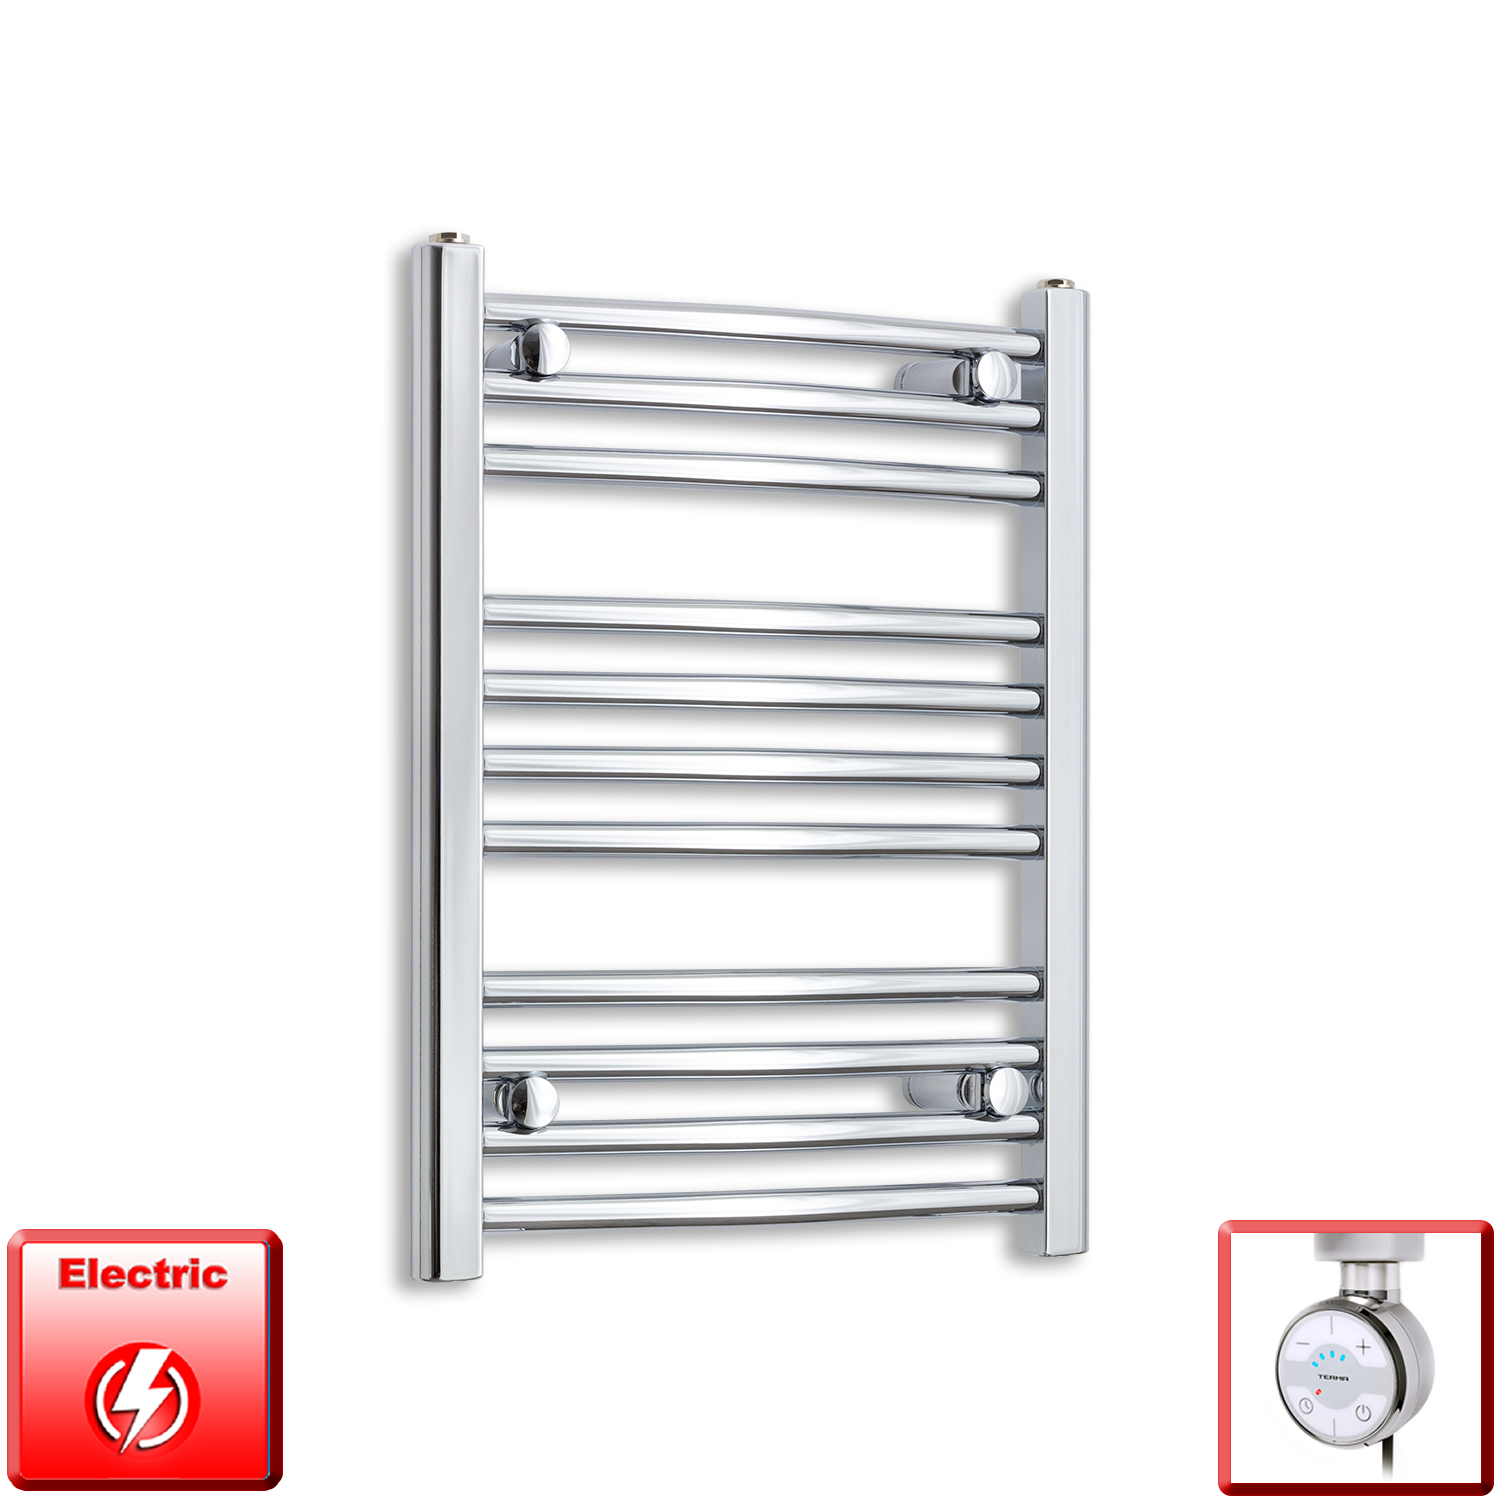 500mm Wide 600mm High Flat Or Curved Chrome Pre-Filled Electric Heated Towel Rail Radiator HTR,MOA Thermostatic Element / Straight